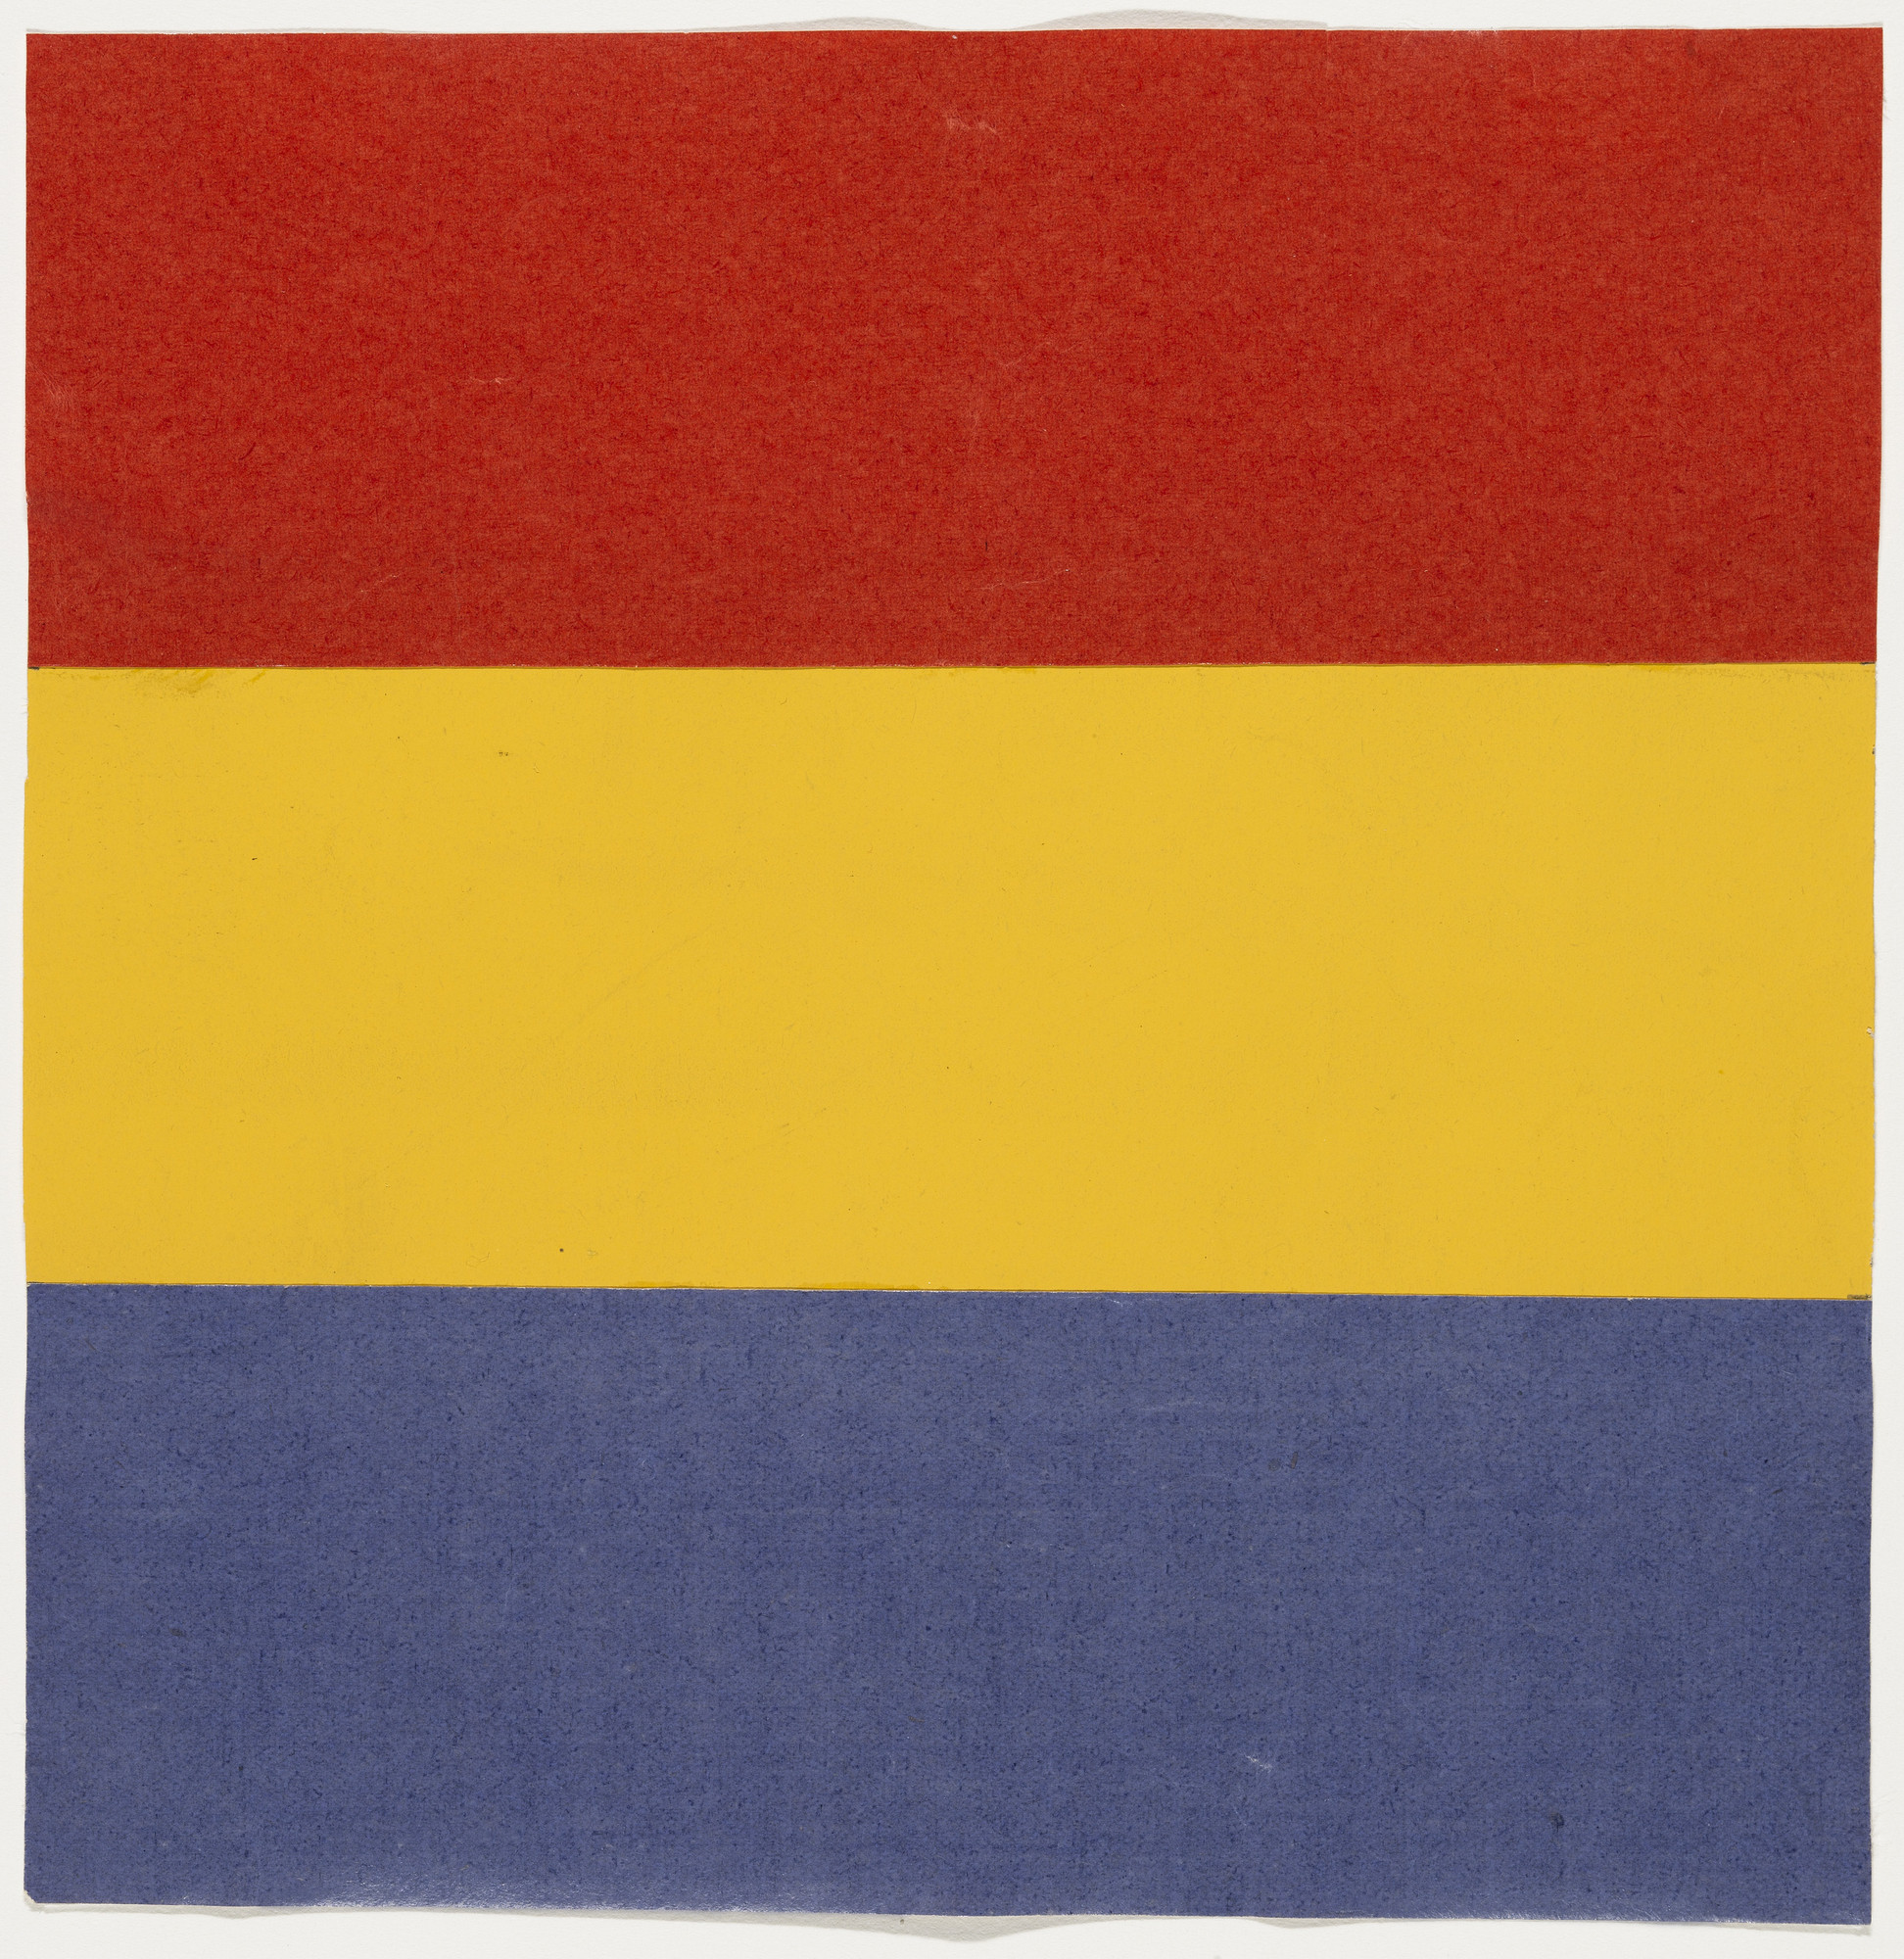 Ellsworth Kelly. Red, Yellow, Blue. 1951